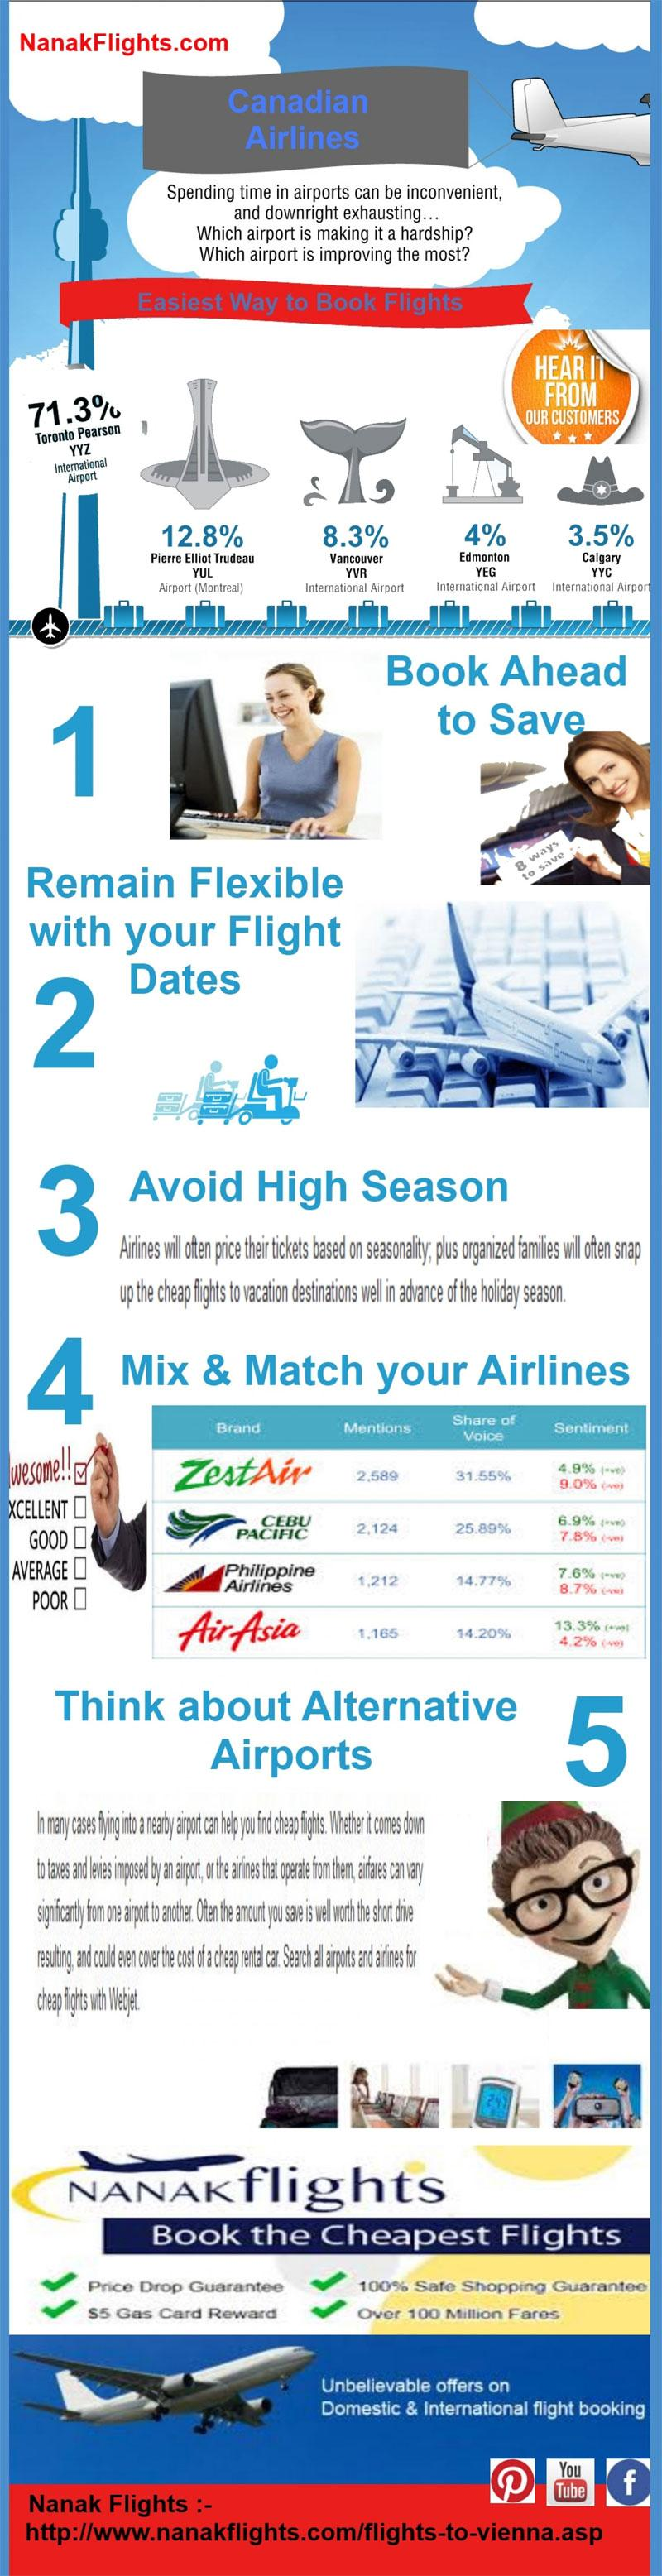 info1 - 6 Secrets on How to Book Cheap Flights